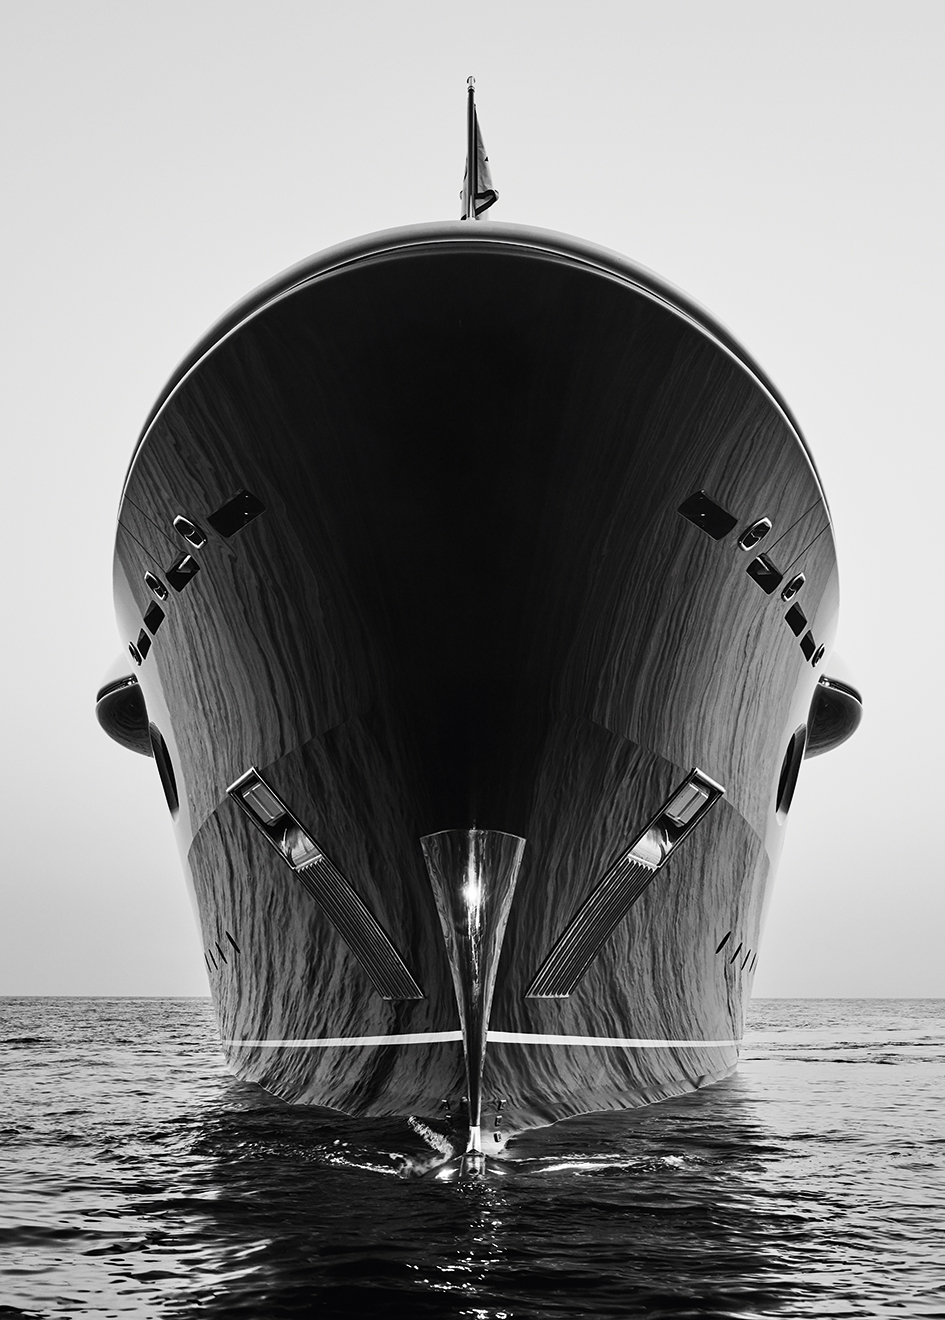 the-bow-of-the-oceanco-superyacht-barbara-credit-guillaume-plisson